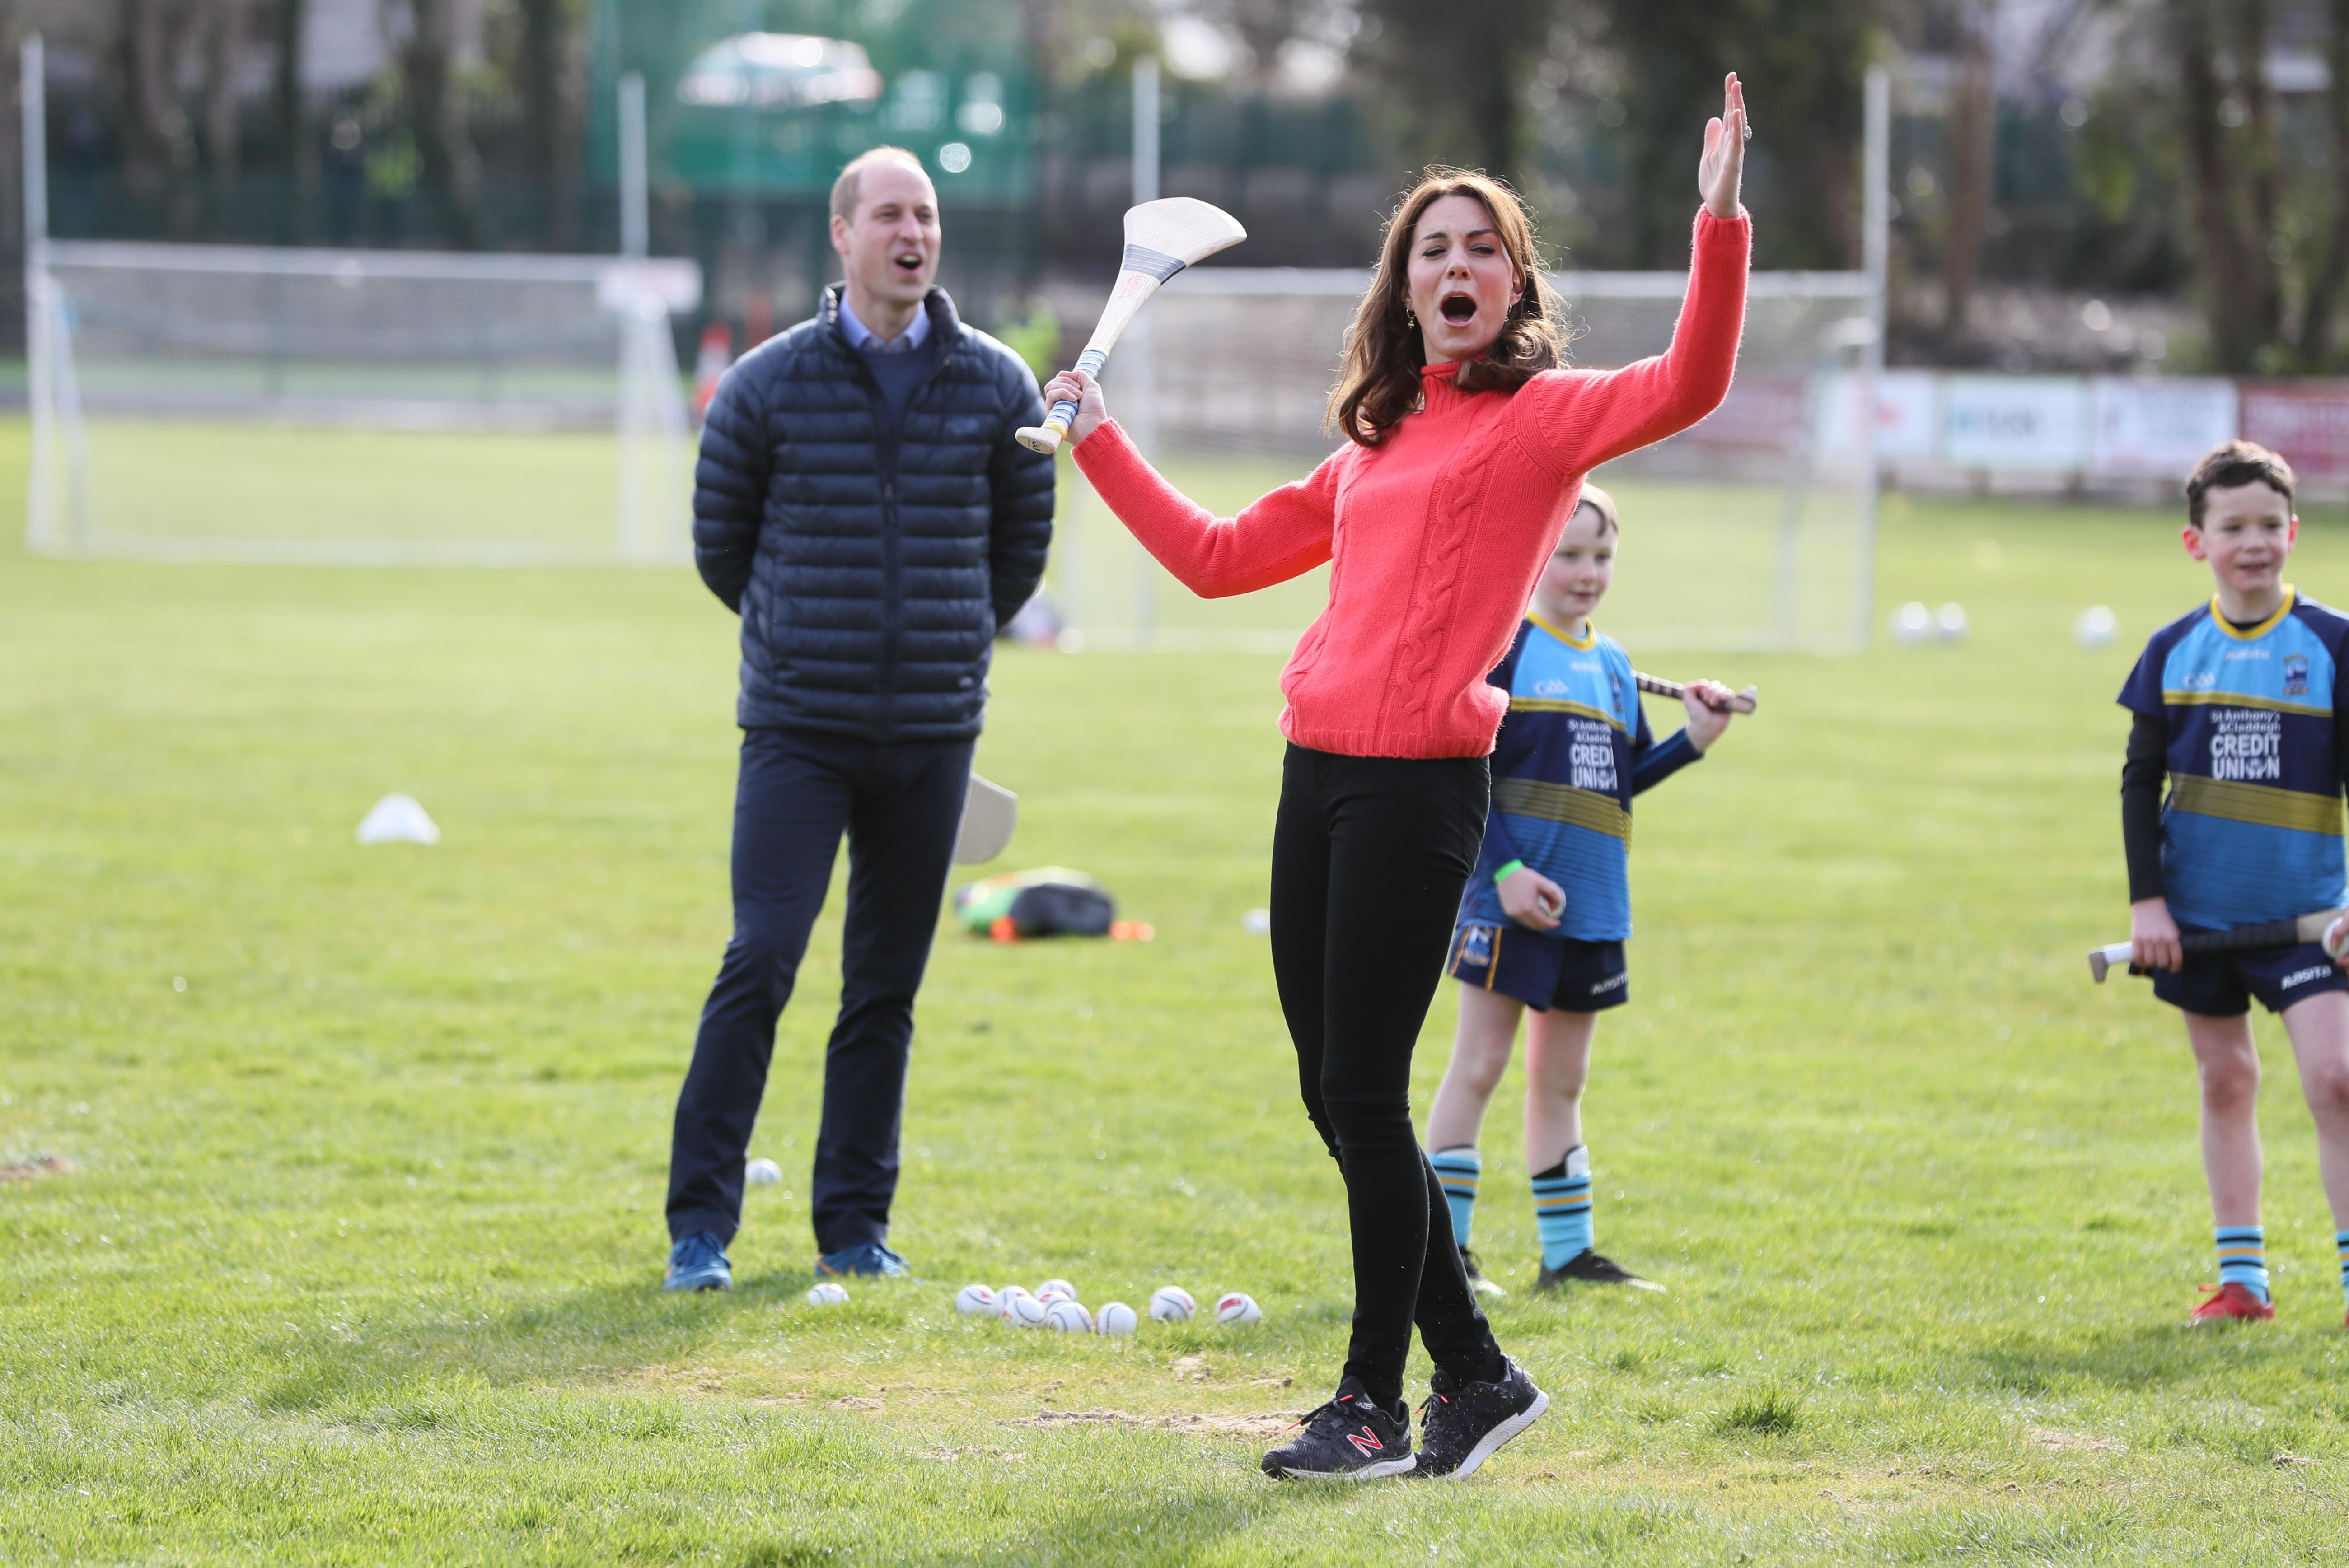 The Duke and Duchess of Cambridge try out hurling during a visit to a local Gaelic Athletic Association (GAA) club to learn more about traditional sports during the third day of their visit to the Republic of Ireland. (Photo by Brian Lawless/PA Images via Getty Images)